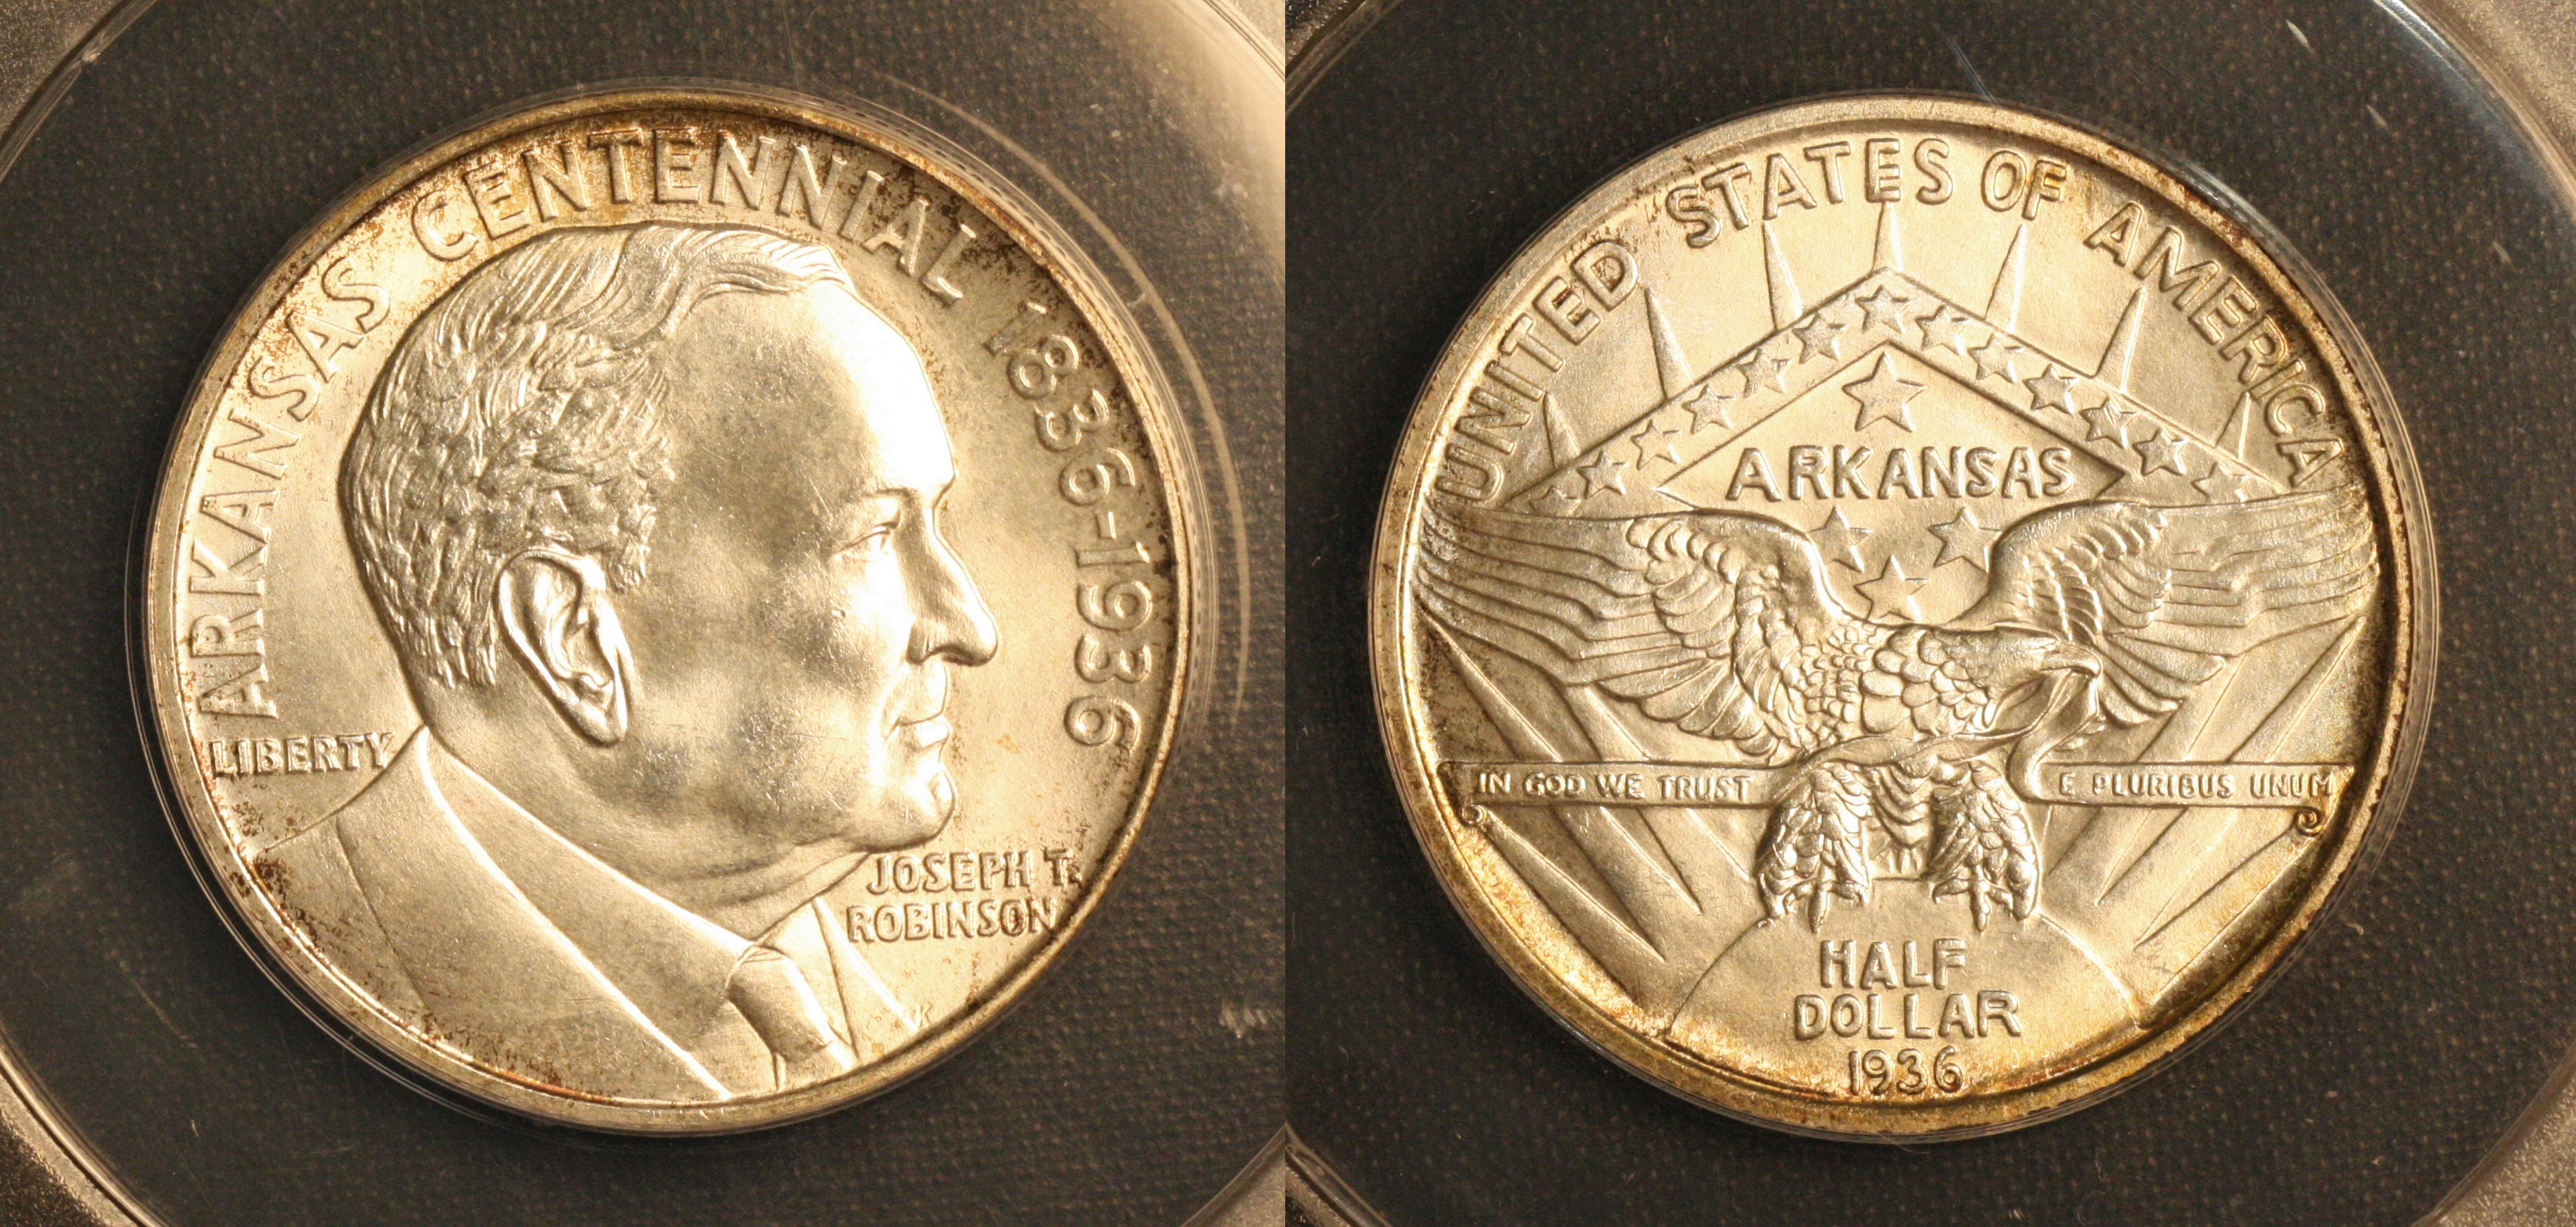 1936 Robinson Arkansas Commemorative Half Dollar ANACS MS-65 camera